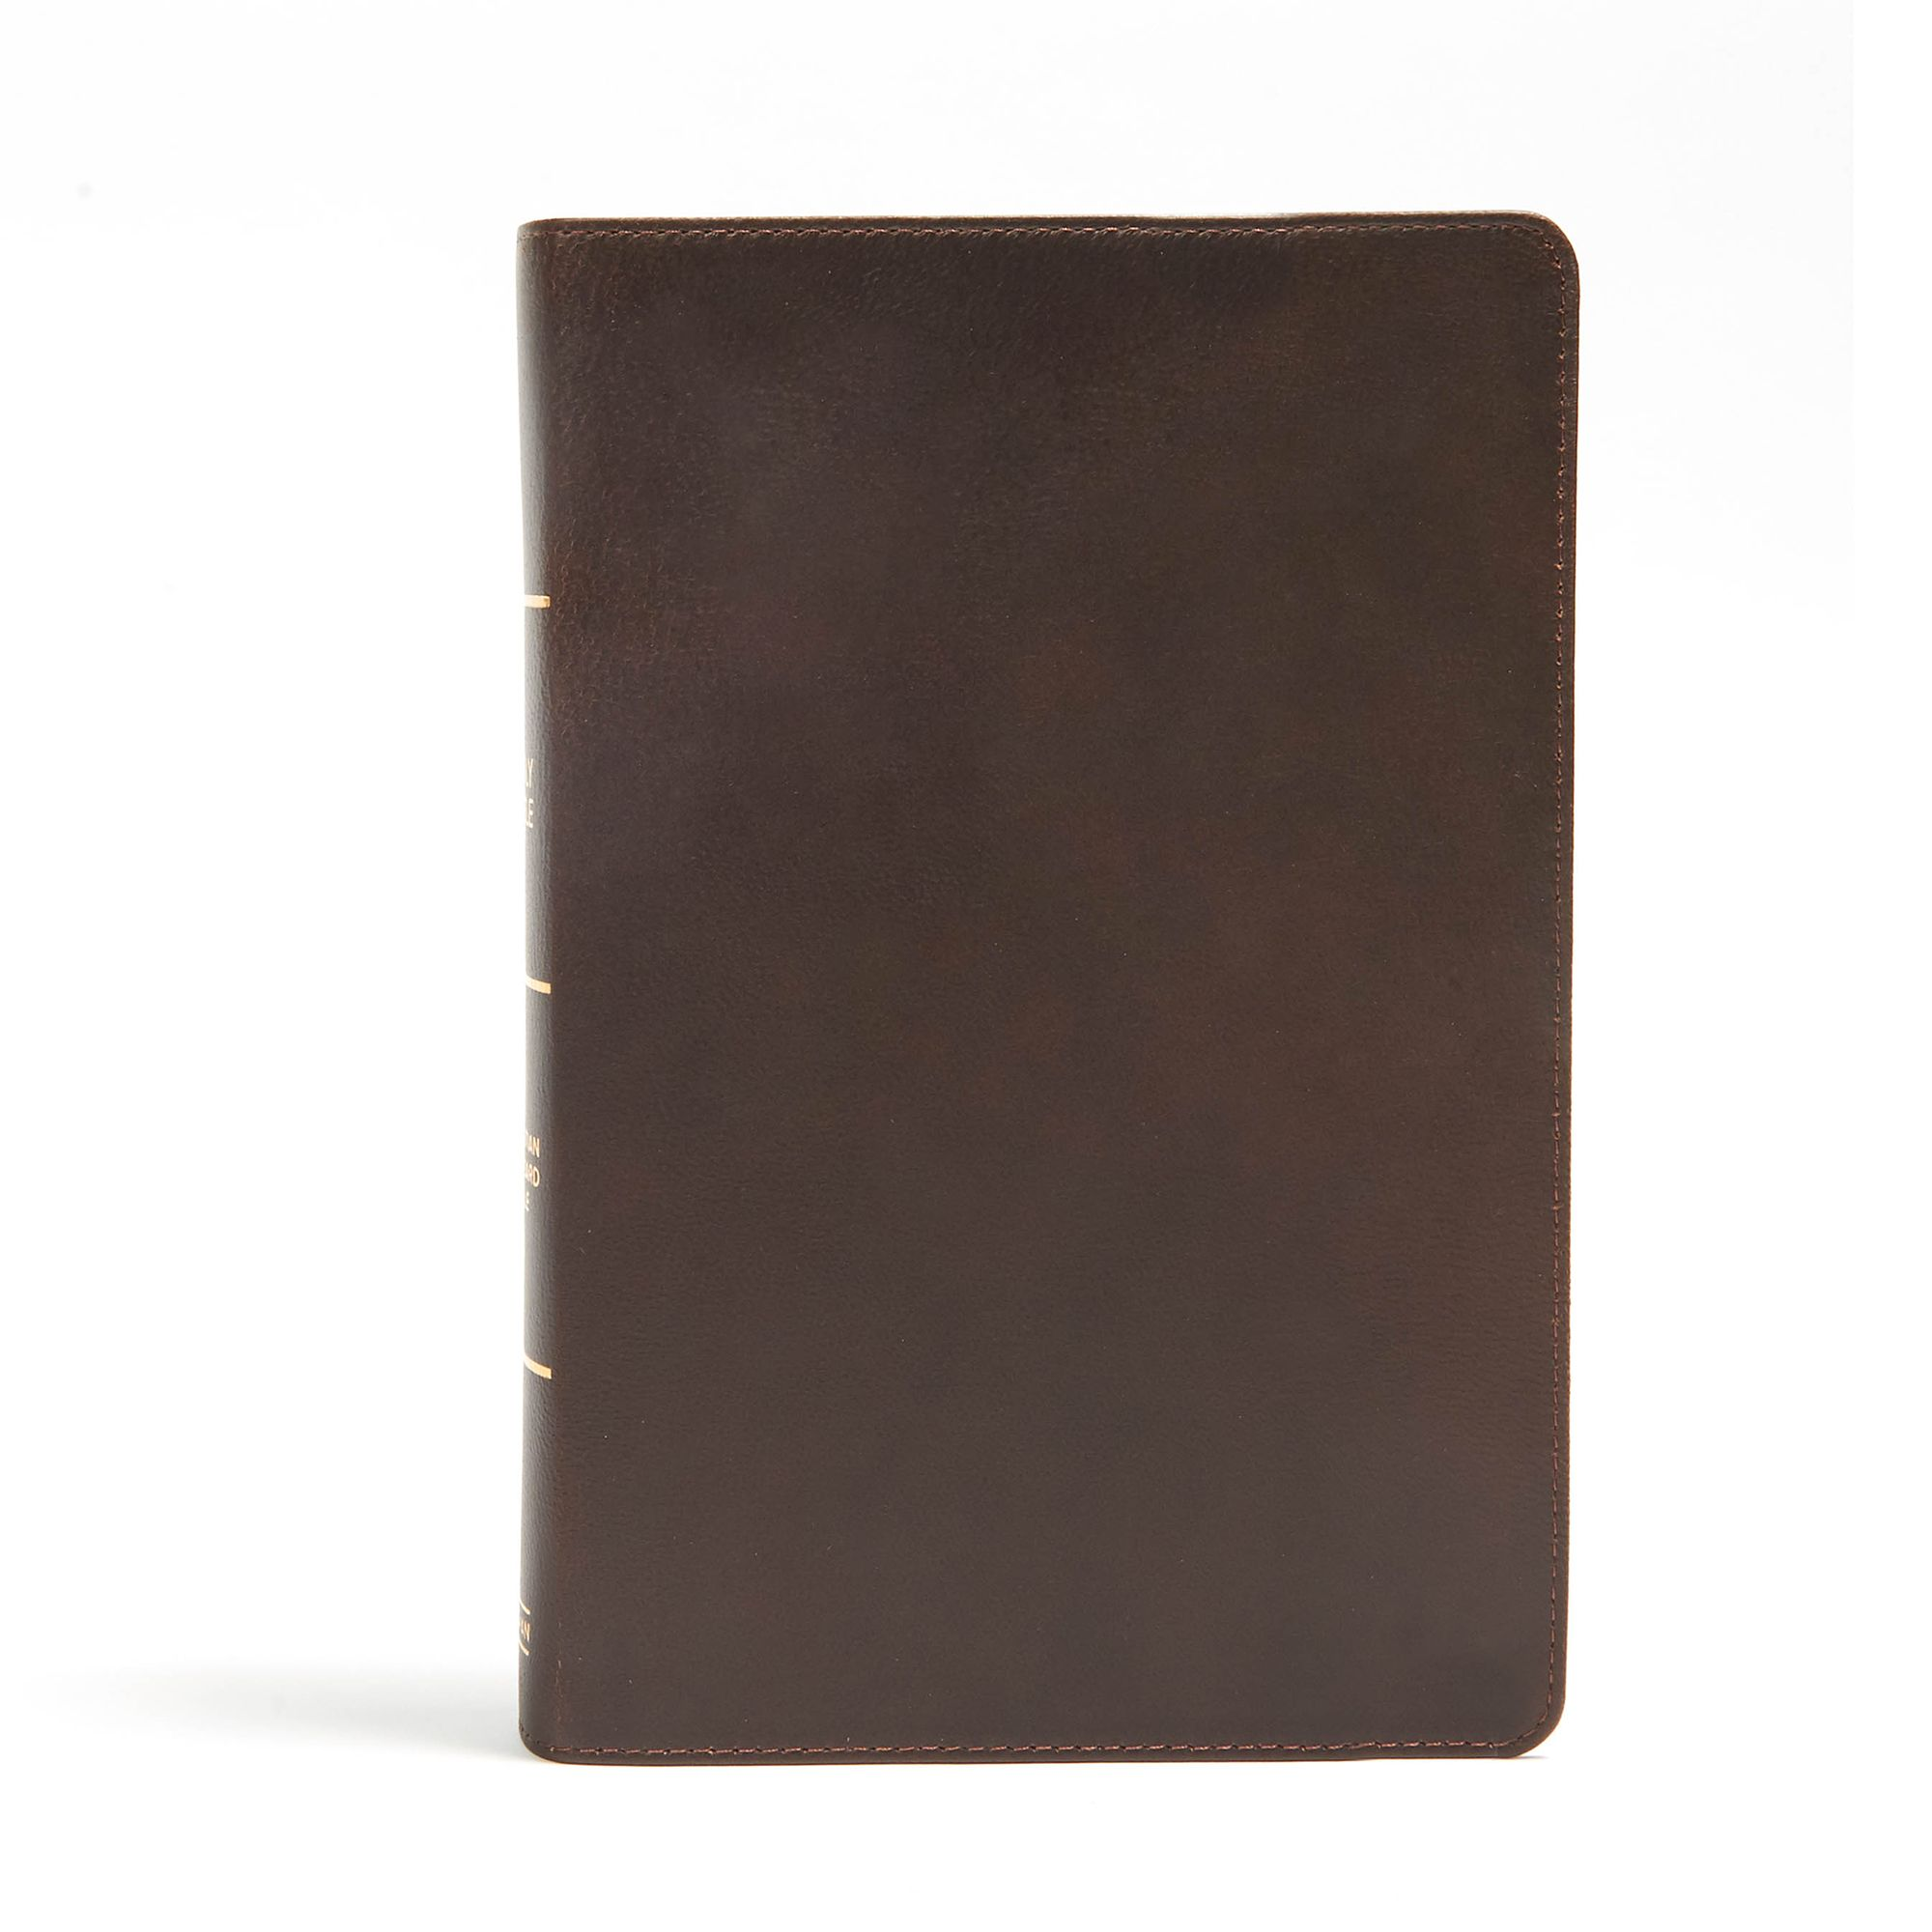 CSB Giant Print Reference Bible, Brown Genuine Leather